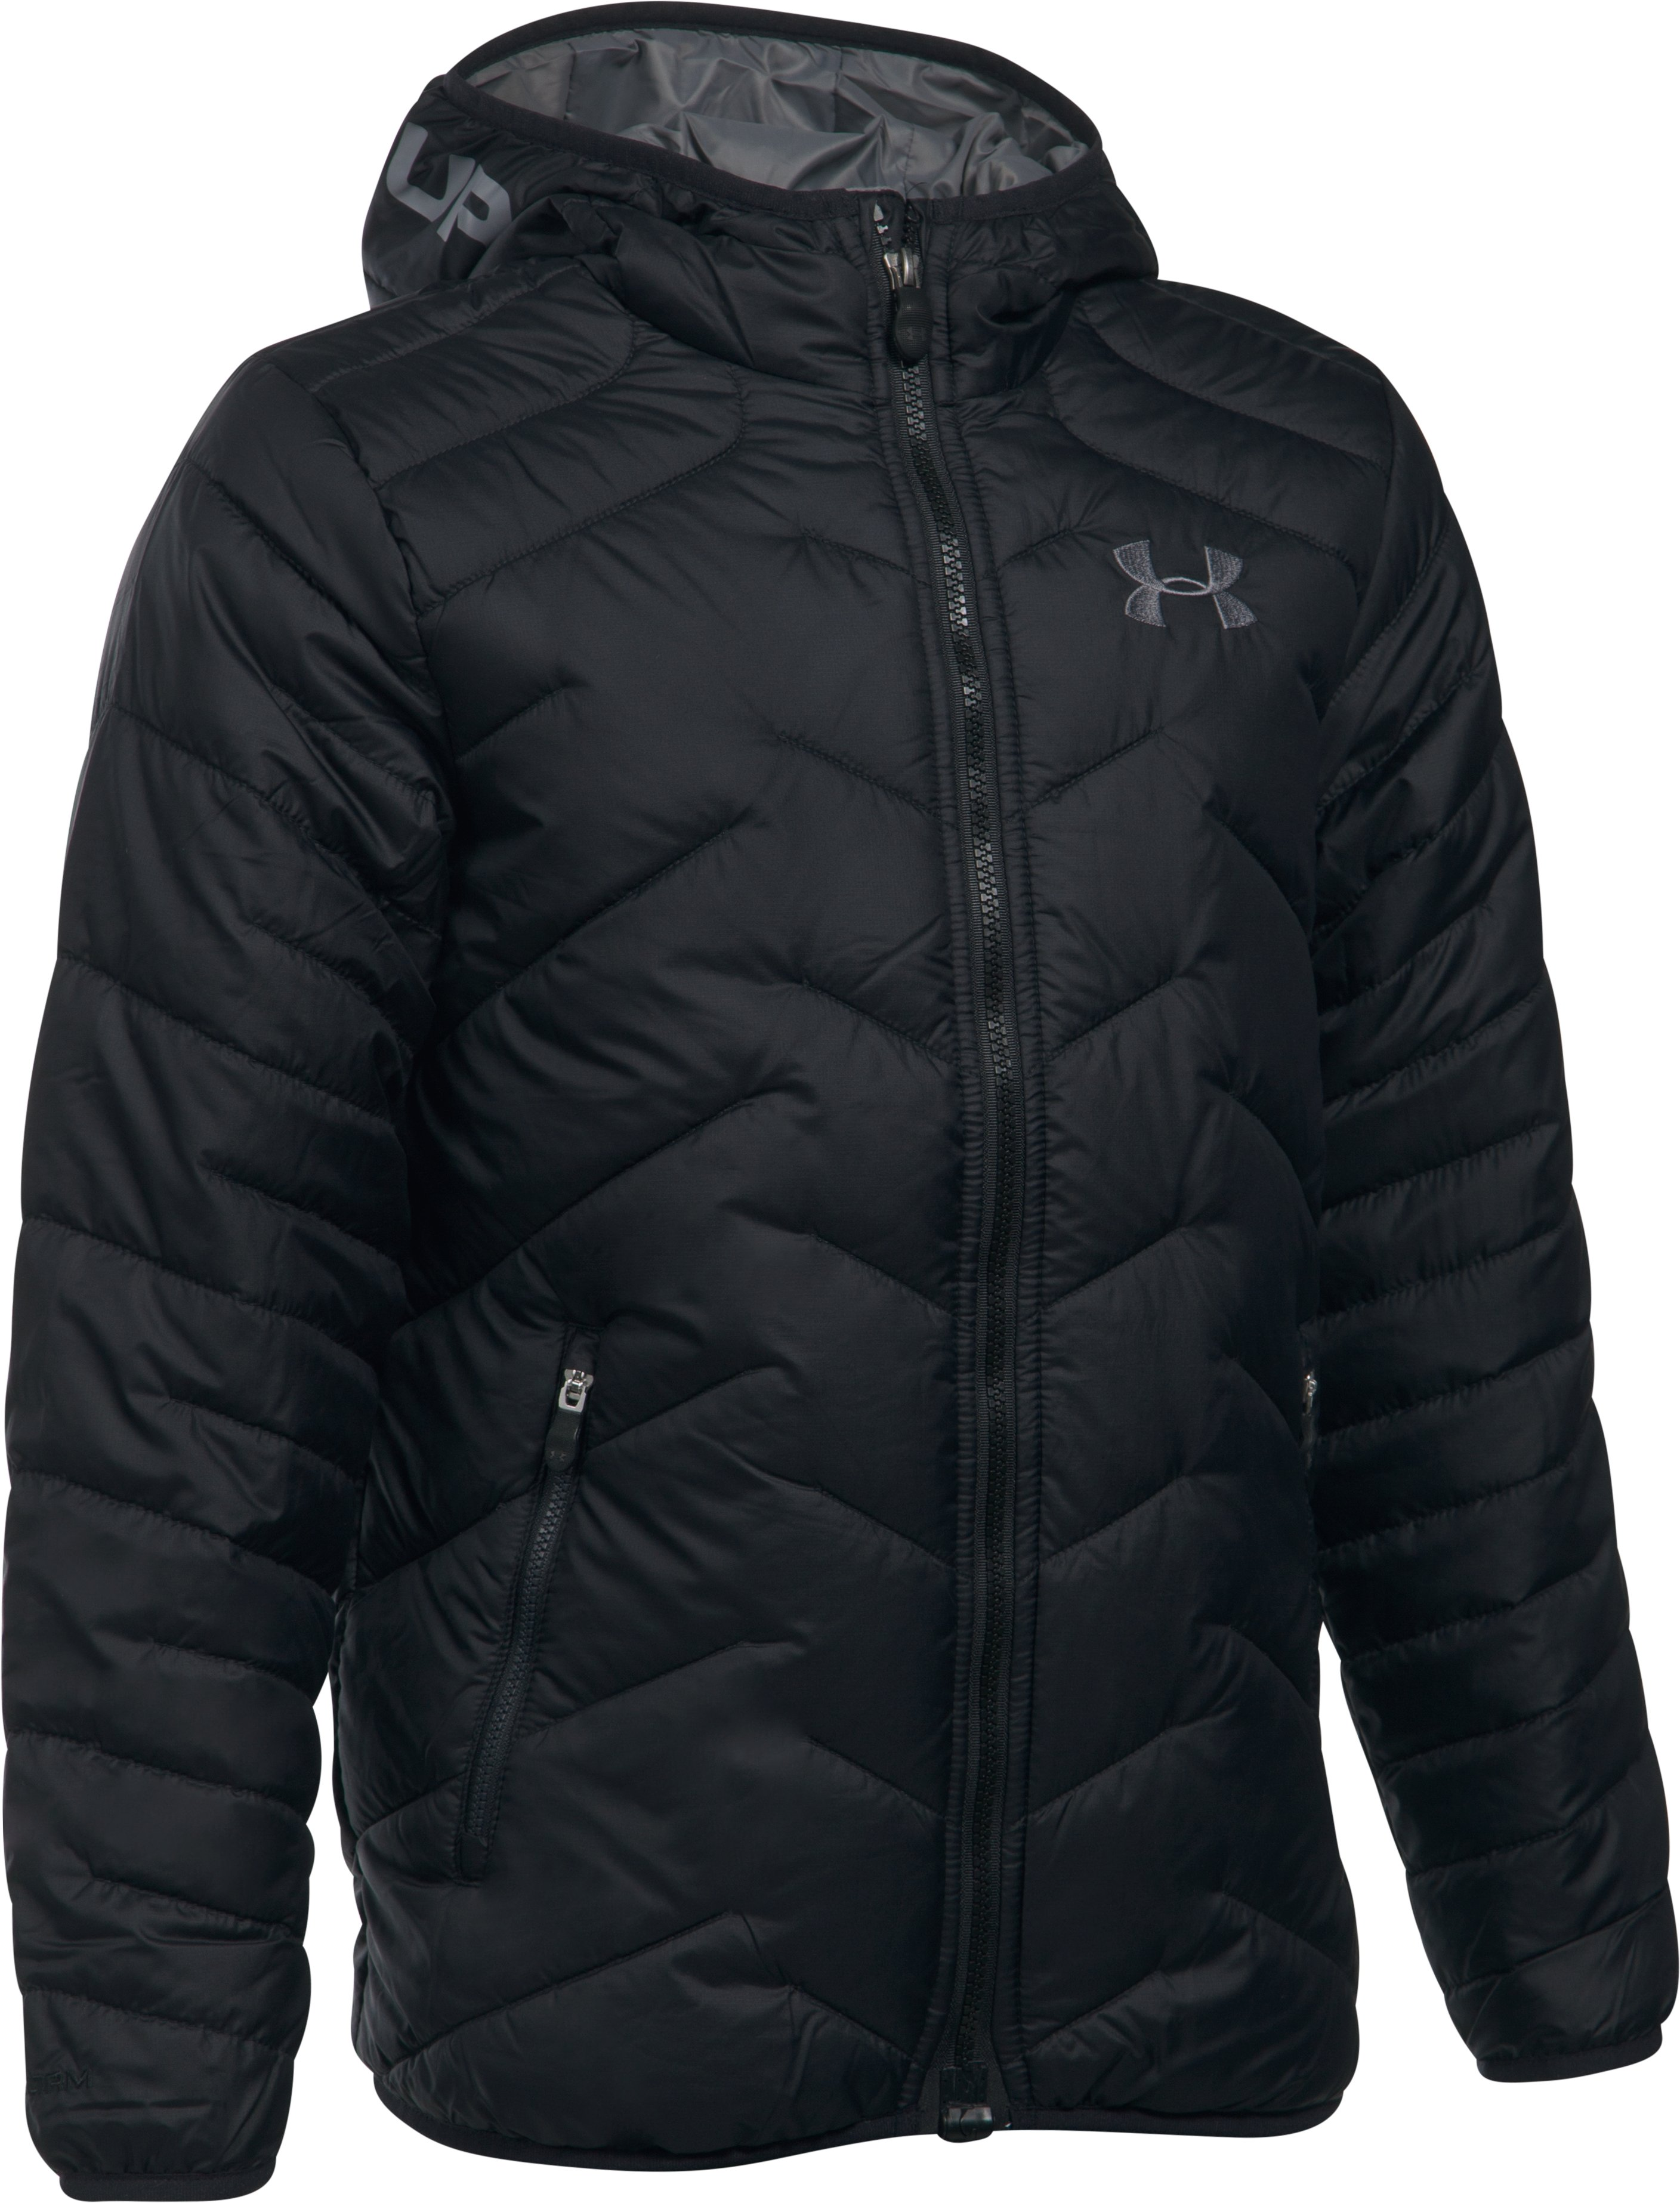 Boys' ColdGear® Reactor Hooded Jacket, Black